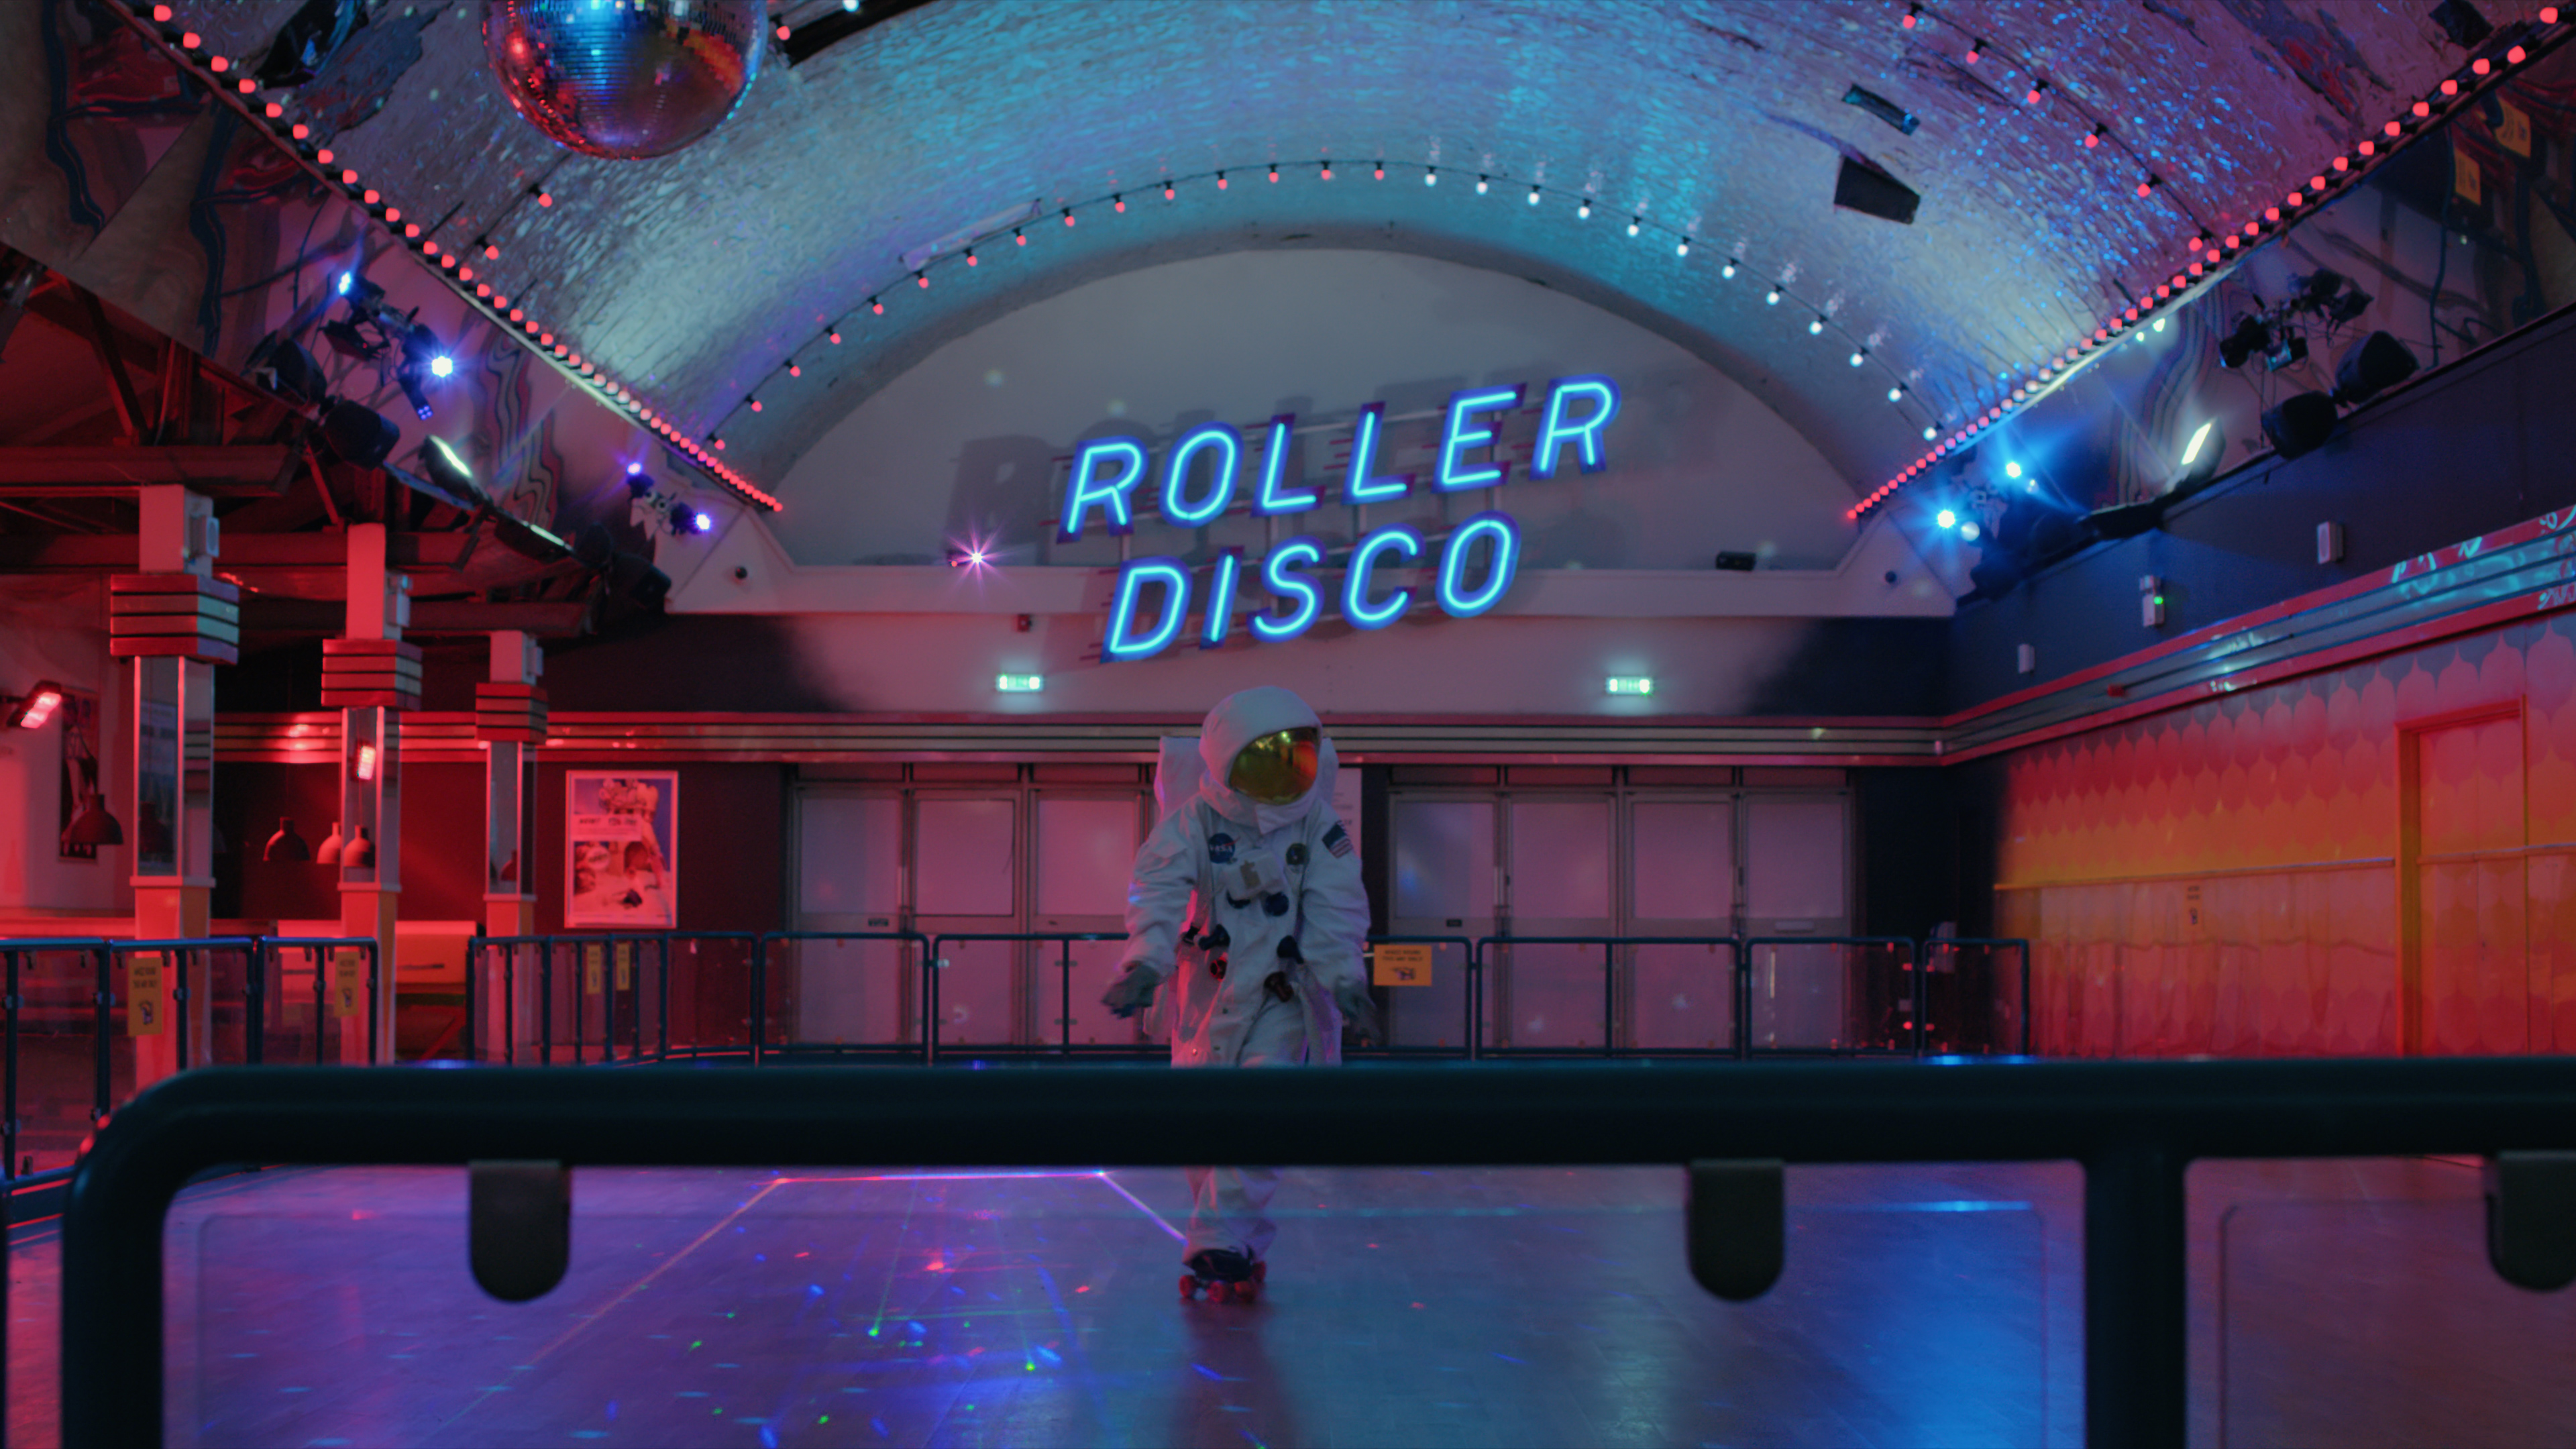 Astronaut in Roller Disco